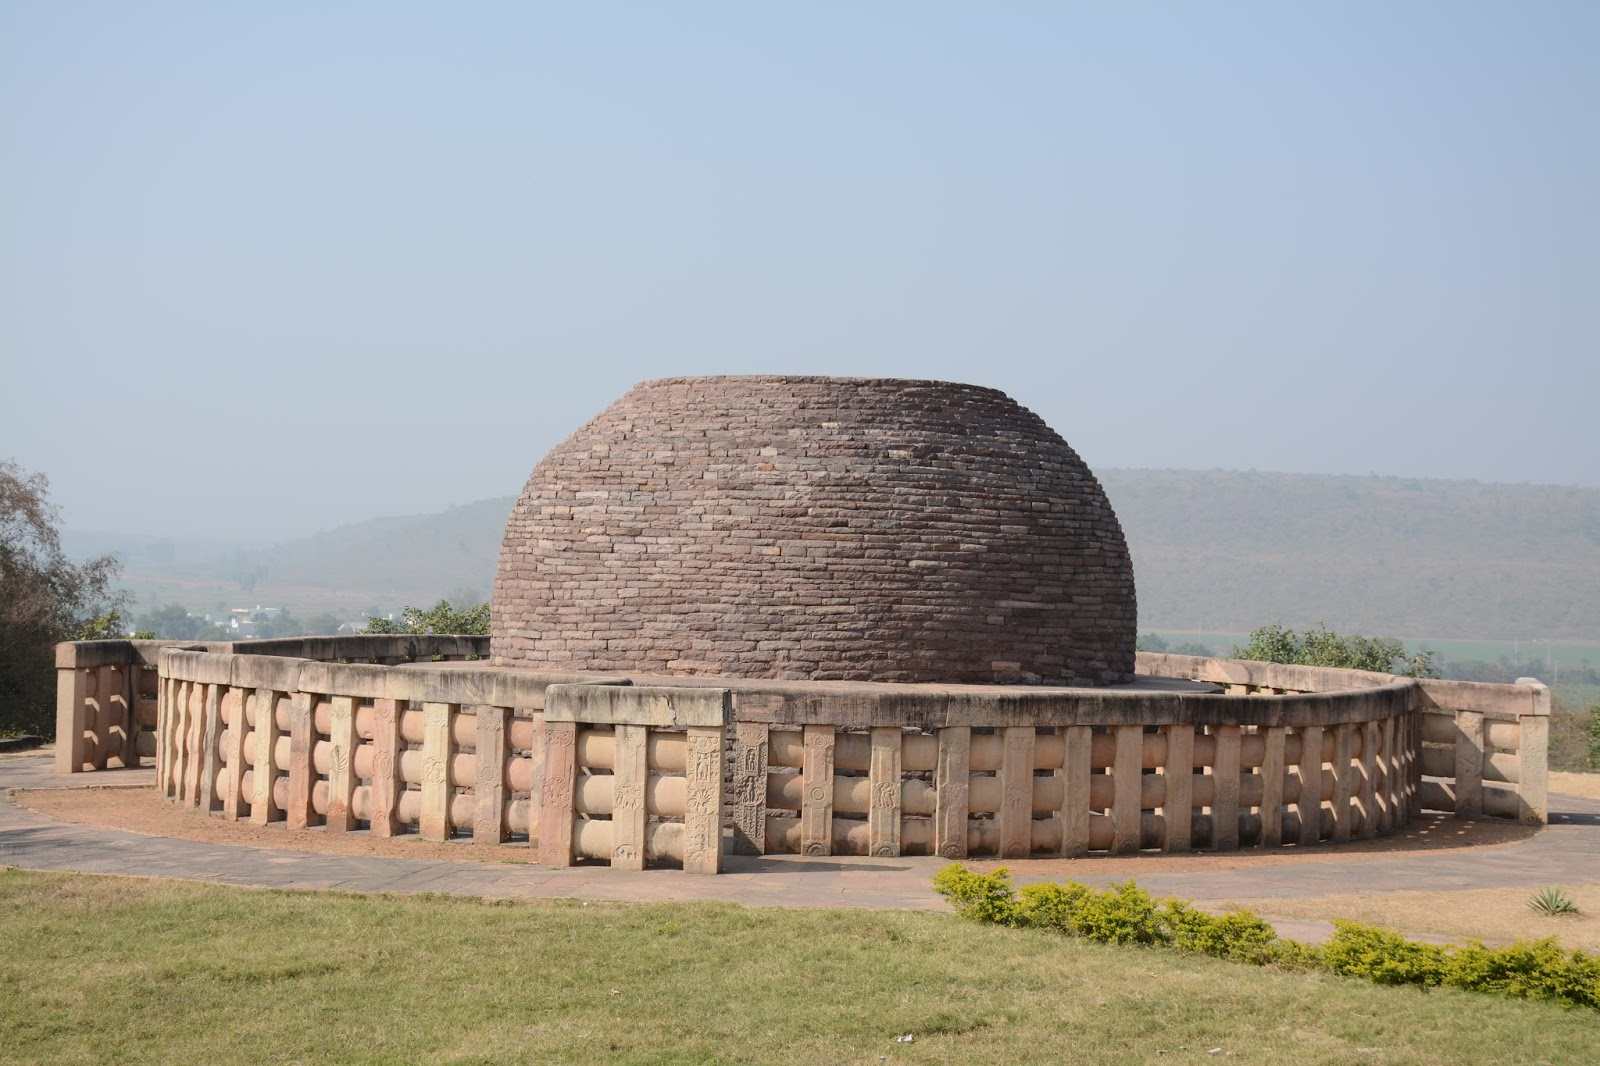 Our Travel Tales: Bhopal Trip: 8. Great Stupa at Sanchi